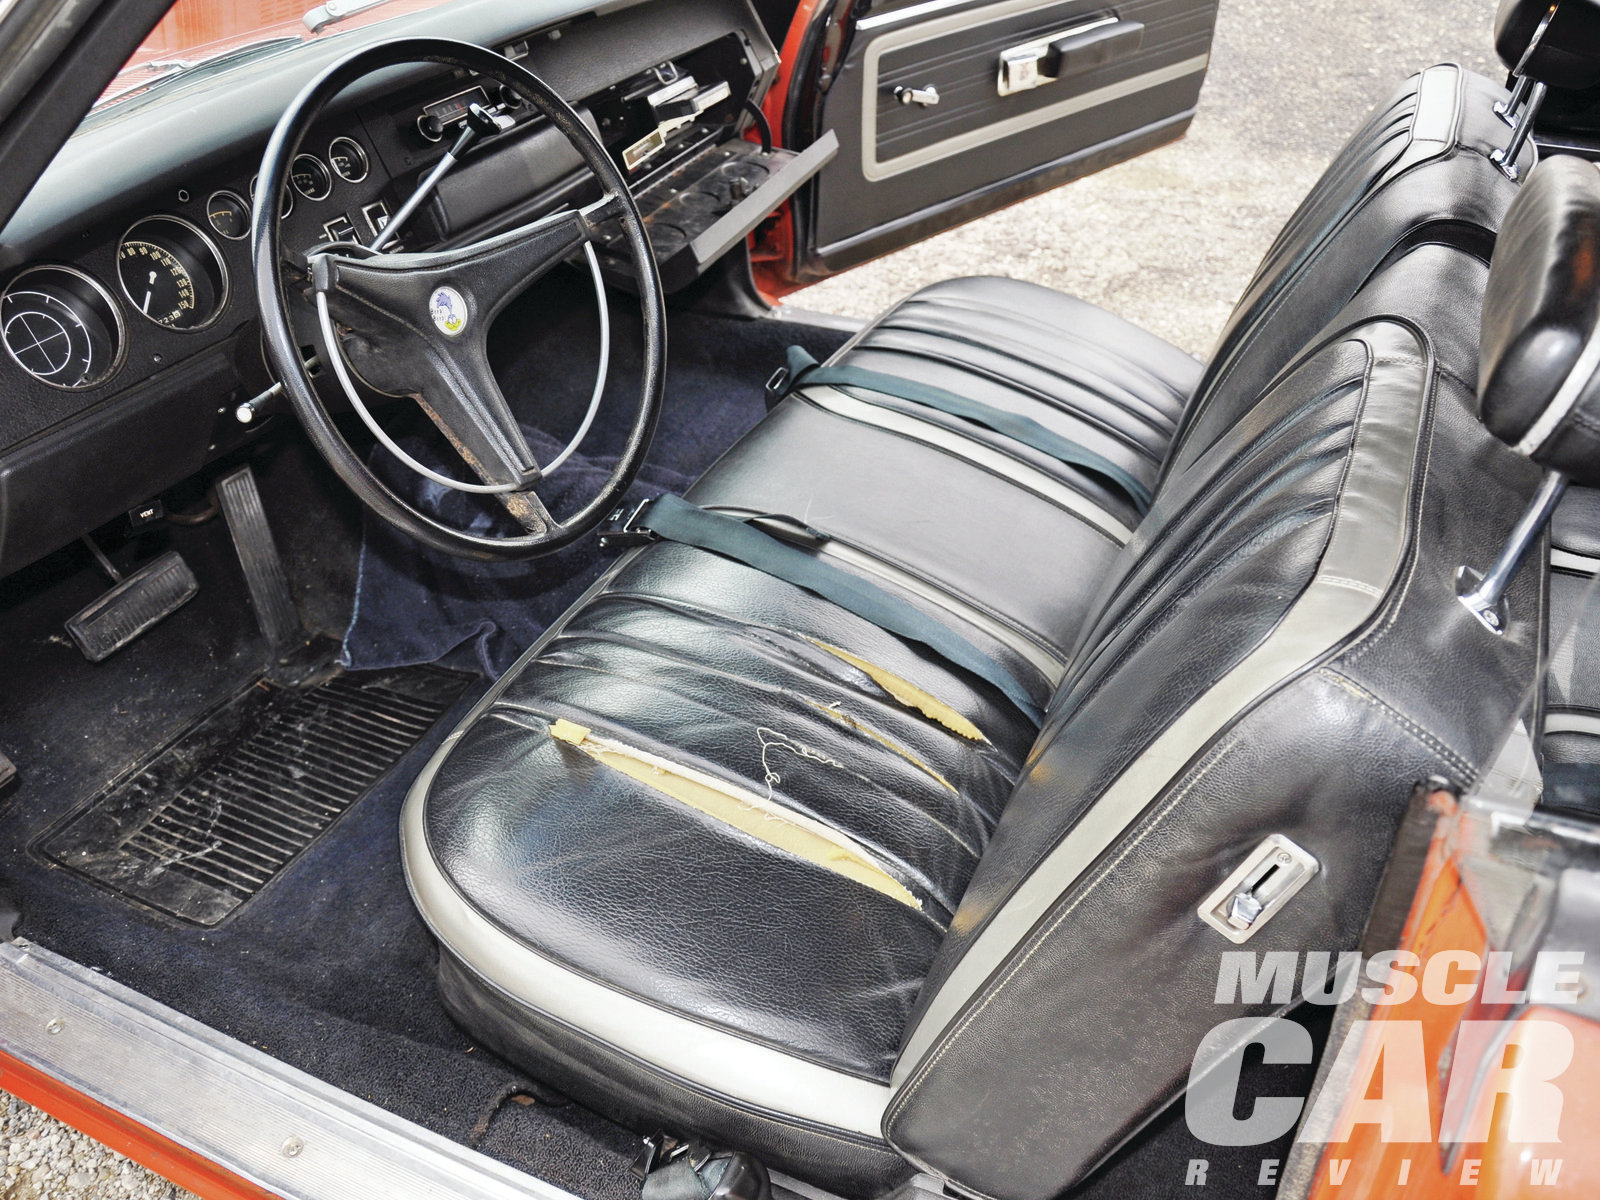 Bucket seats were optional on the Superbird, and Kent's car doesn't have them. Some people see the column shifter and quickly dismiss the car as a fake. The seats show some wear, which, for the owner, only enhances the car's authenticity.